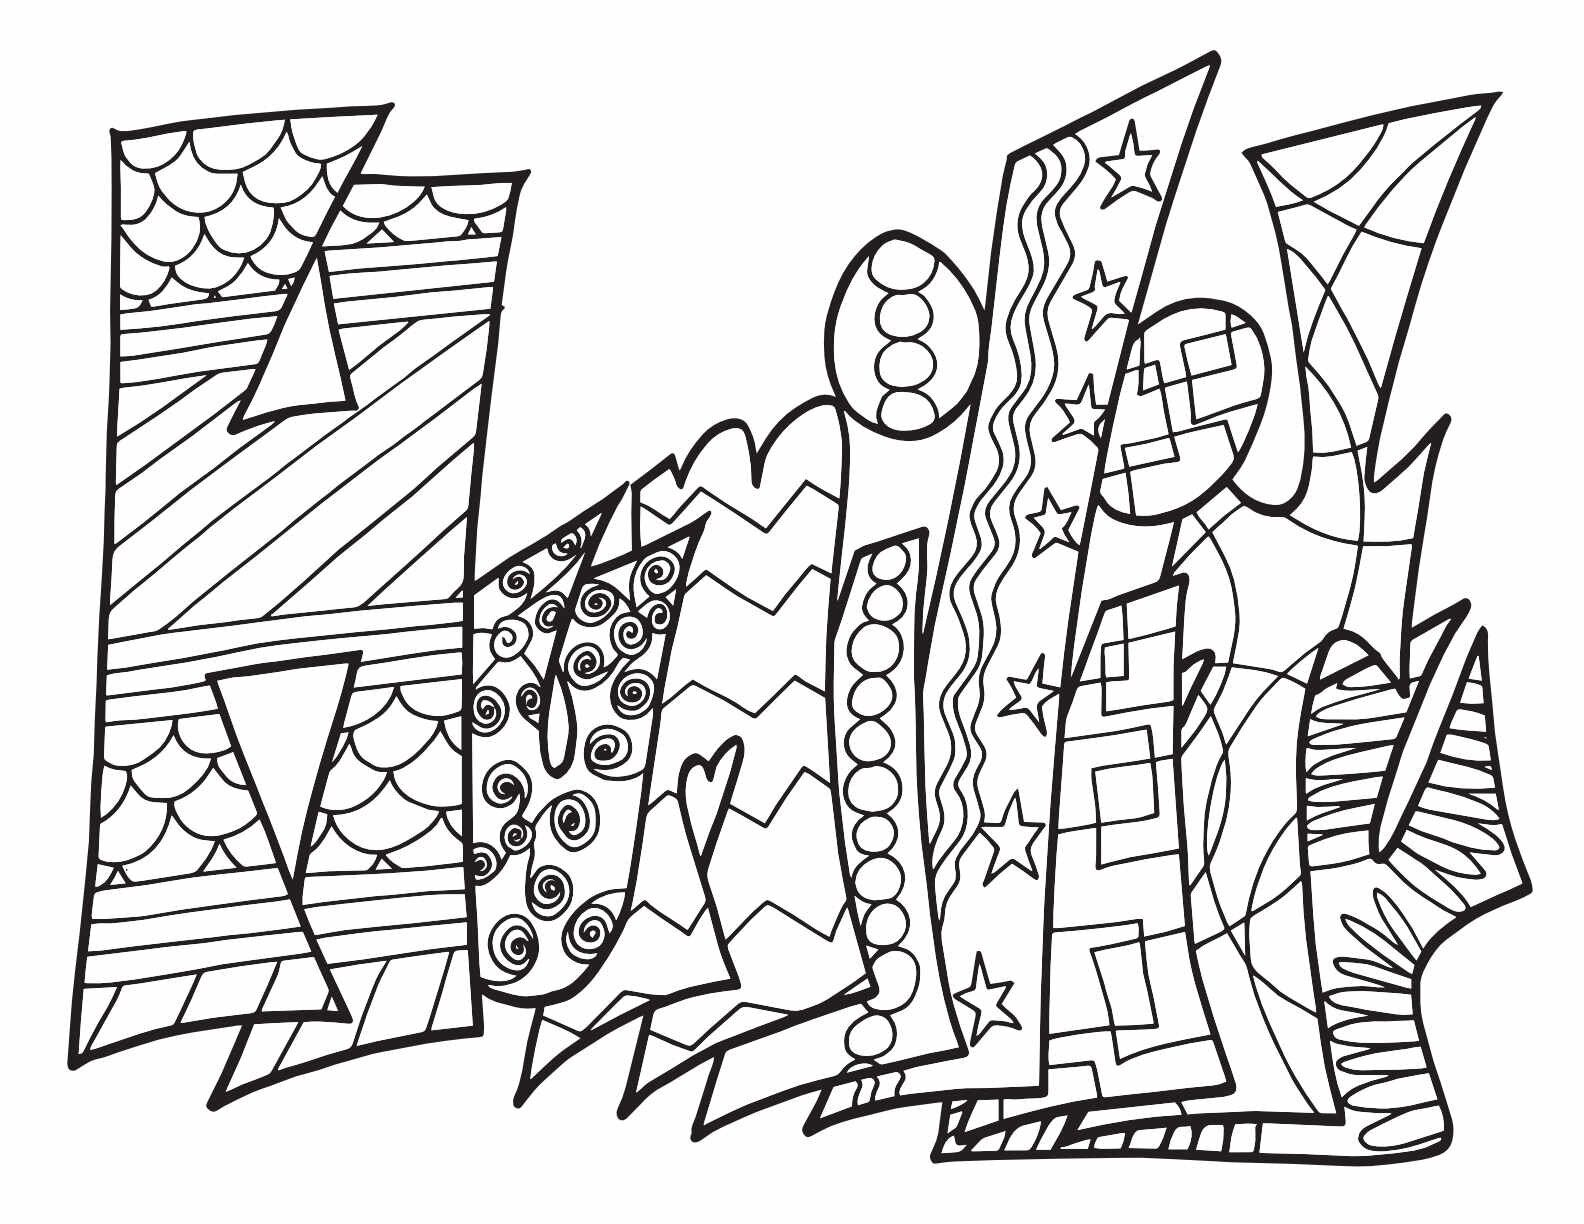 Humility 2 Free Printable Coloring Pages In 2020 Coloring Pages